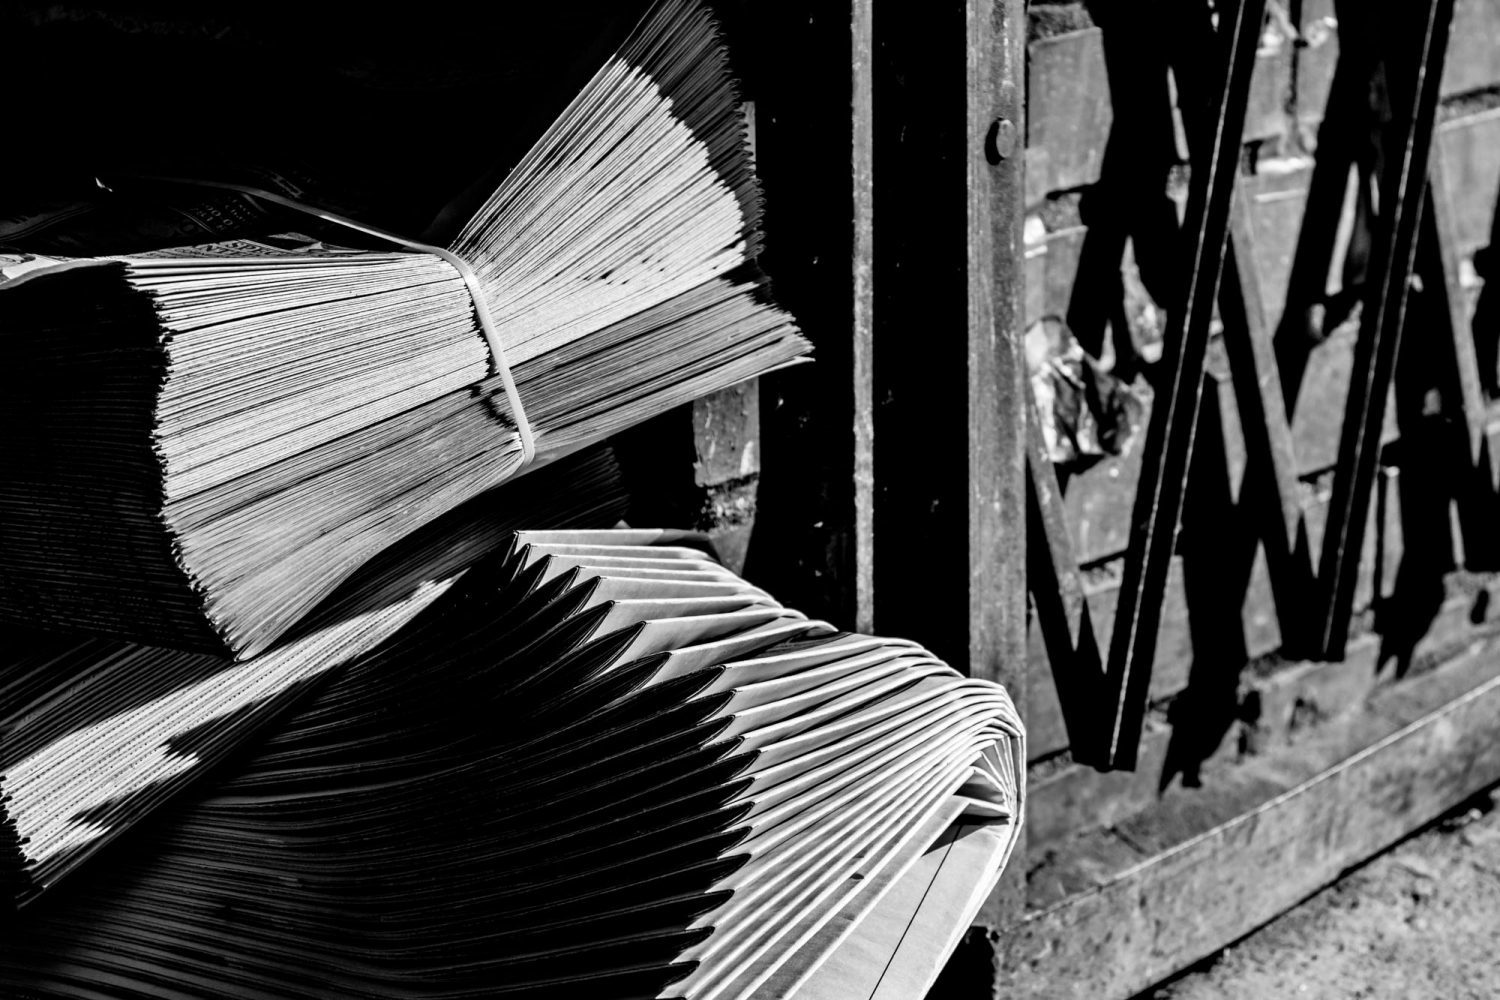 Two neatly bundles of neatly stacked newspapers on ground outside beside metal gate, in black and white